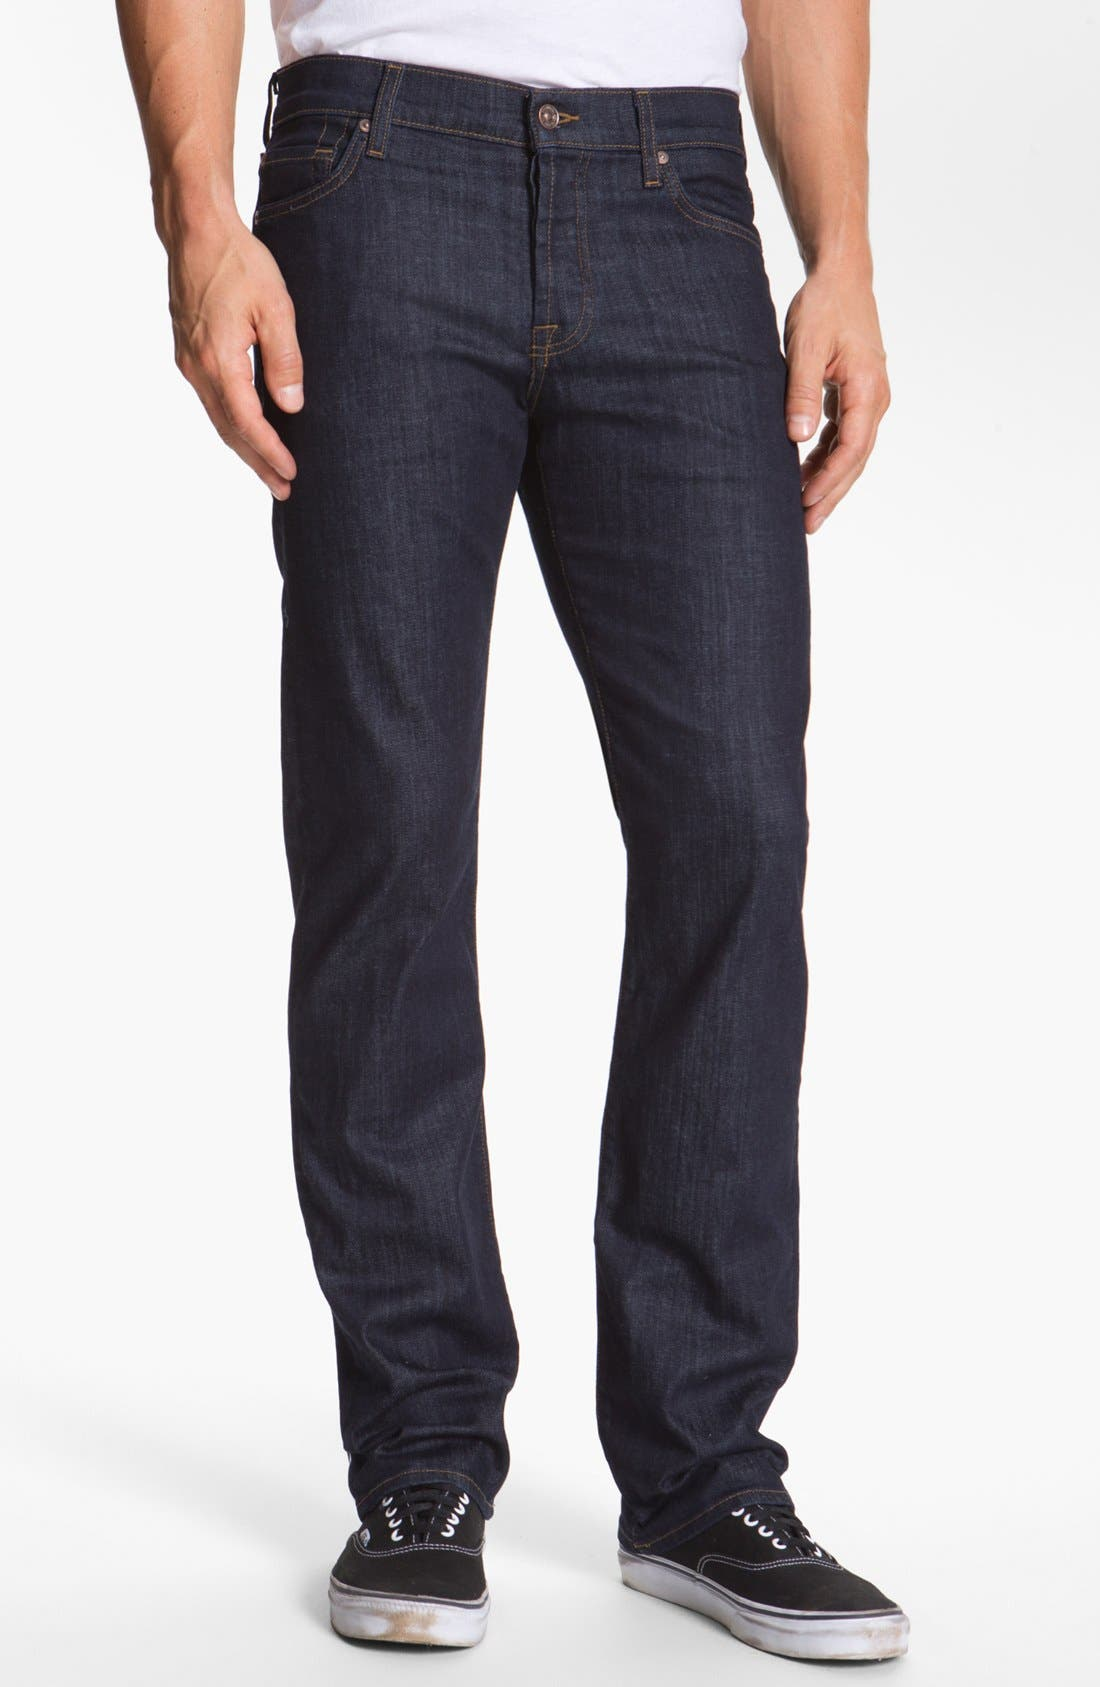 Alternate Image 1 Selected - 7 For All Mankind® 'Standard' Straight Leg Jeans (Dark and Clean)